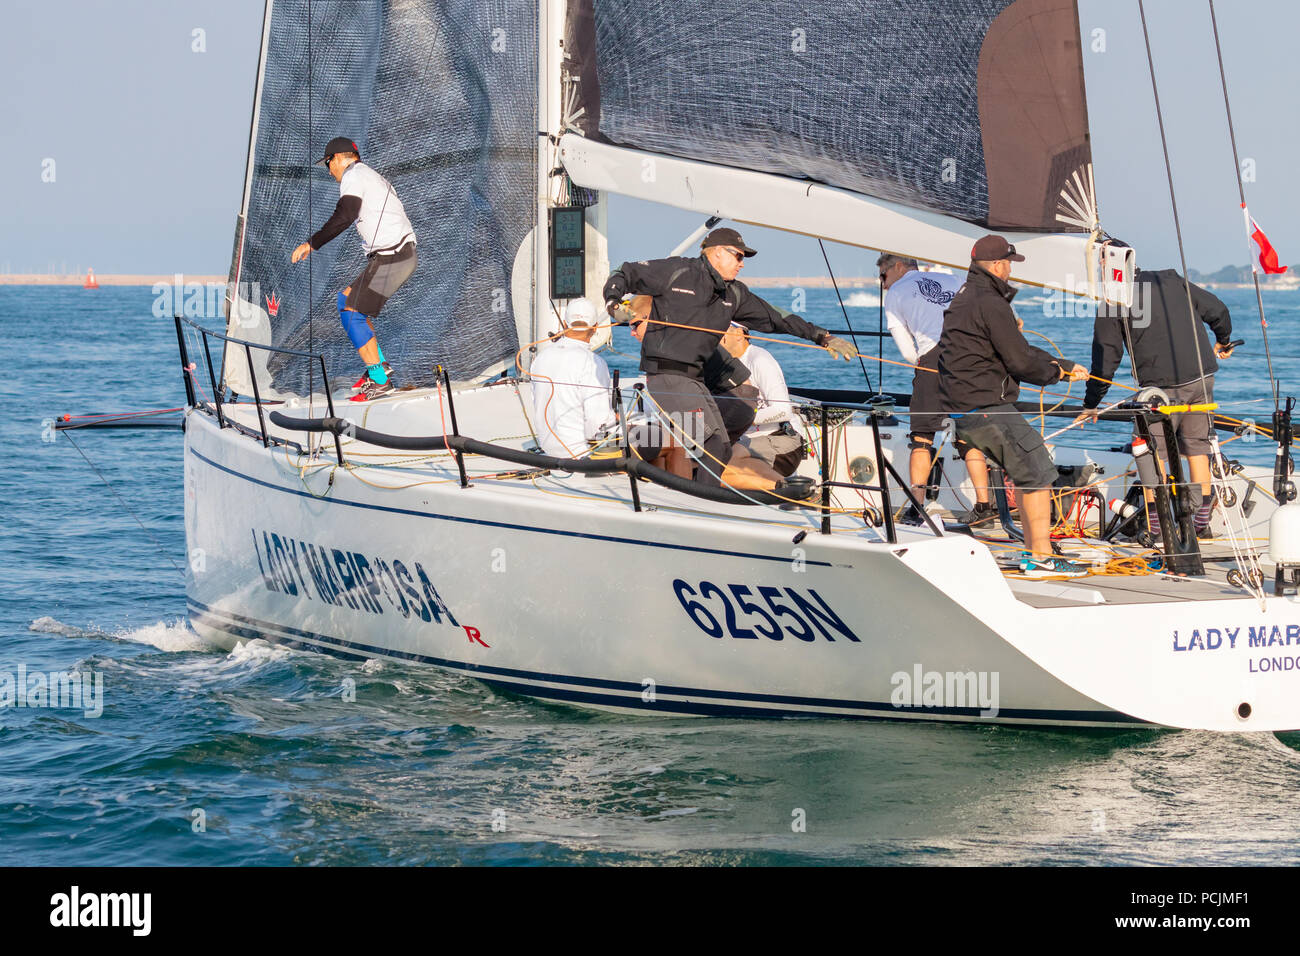 English Channel, Nr Isle of Wight, UK; 7th July 2018; Crew Members Working Aboard Ker 46 Yacht, Lady Mariposa Competing in Round the Island Race - Stock Image